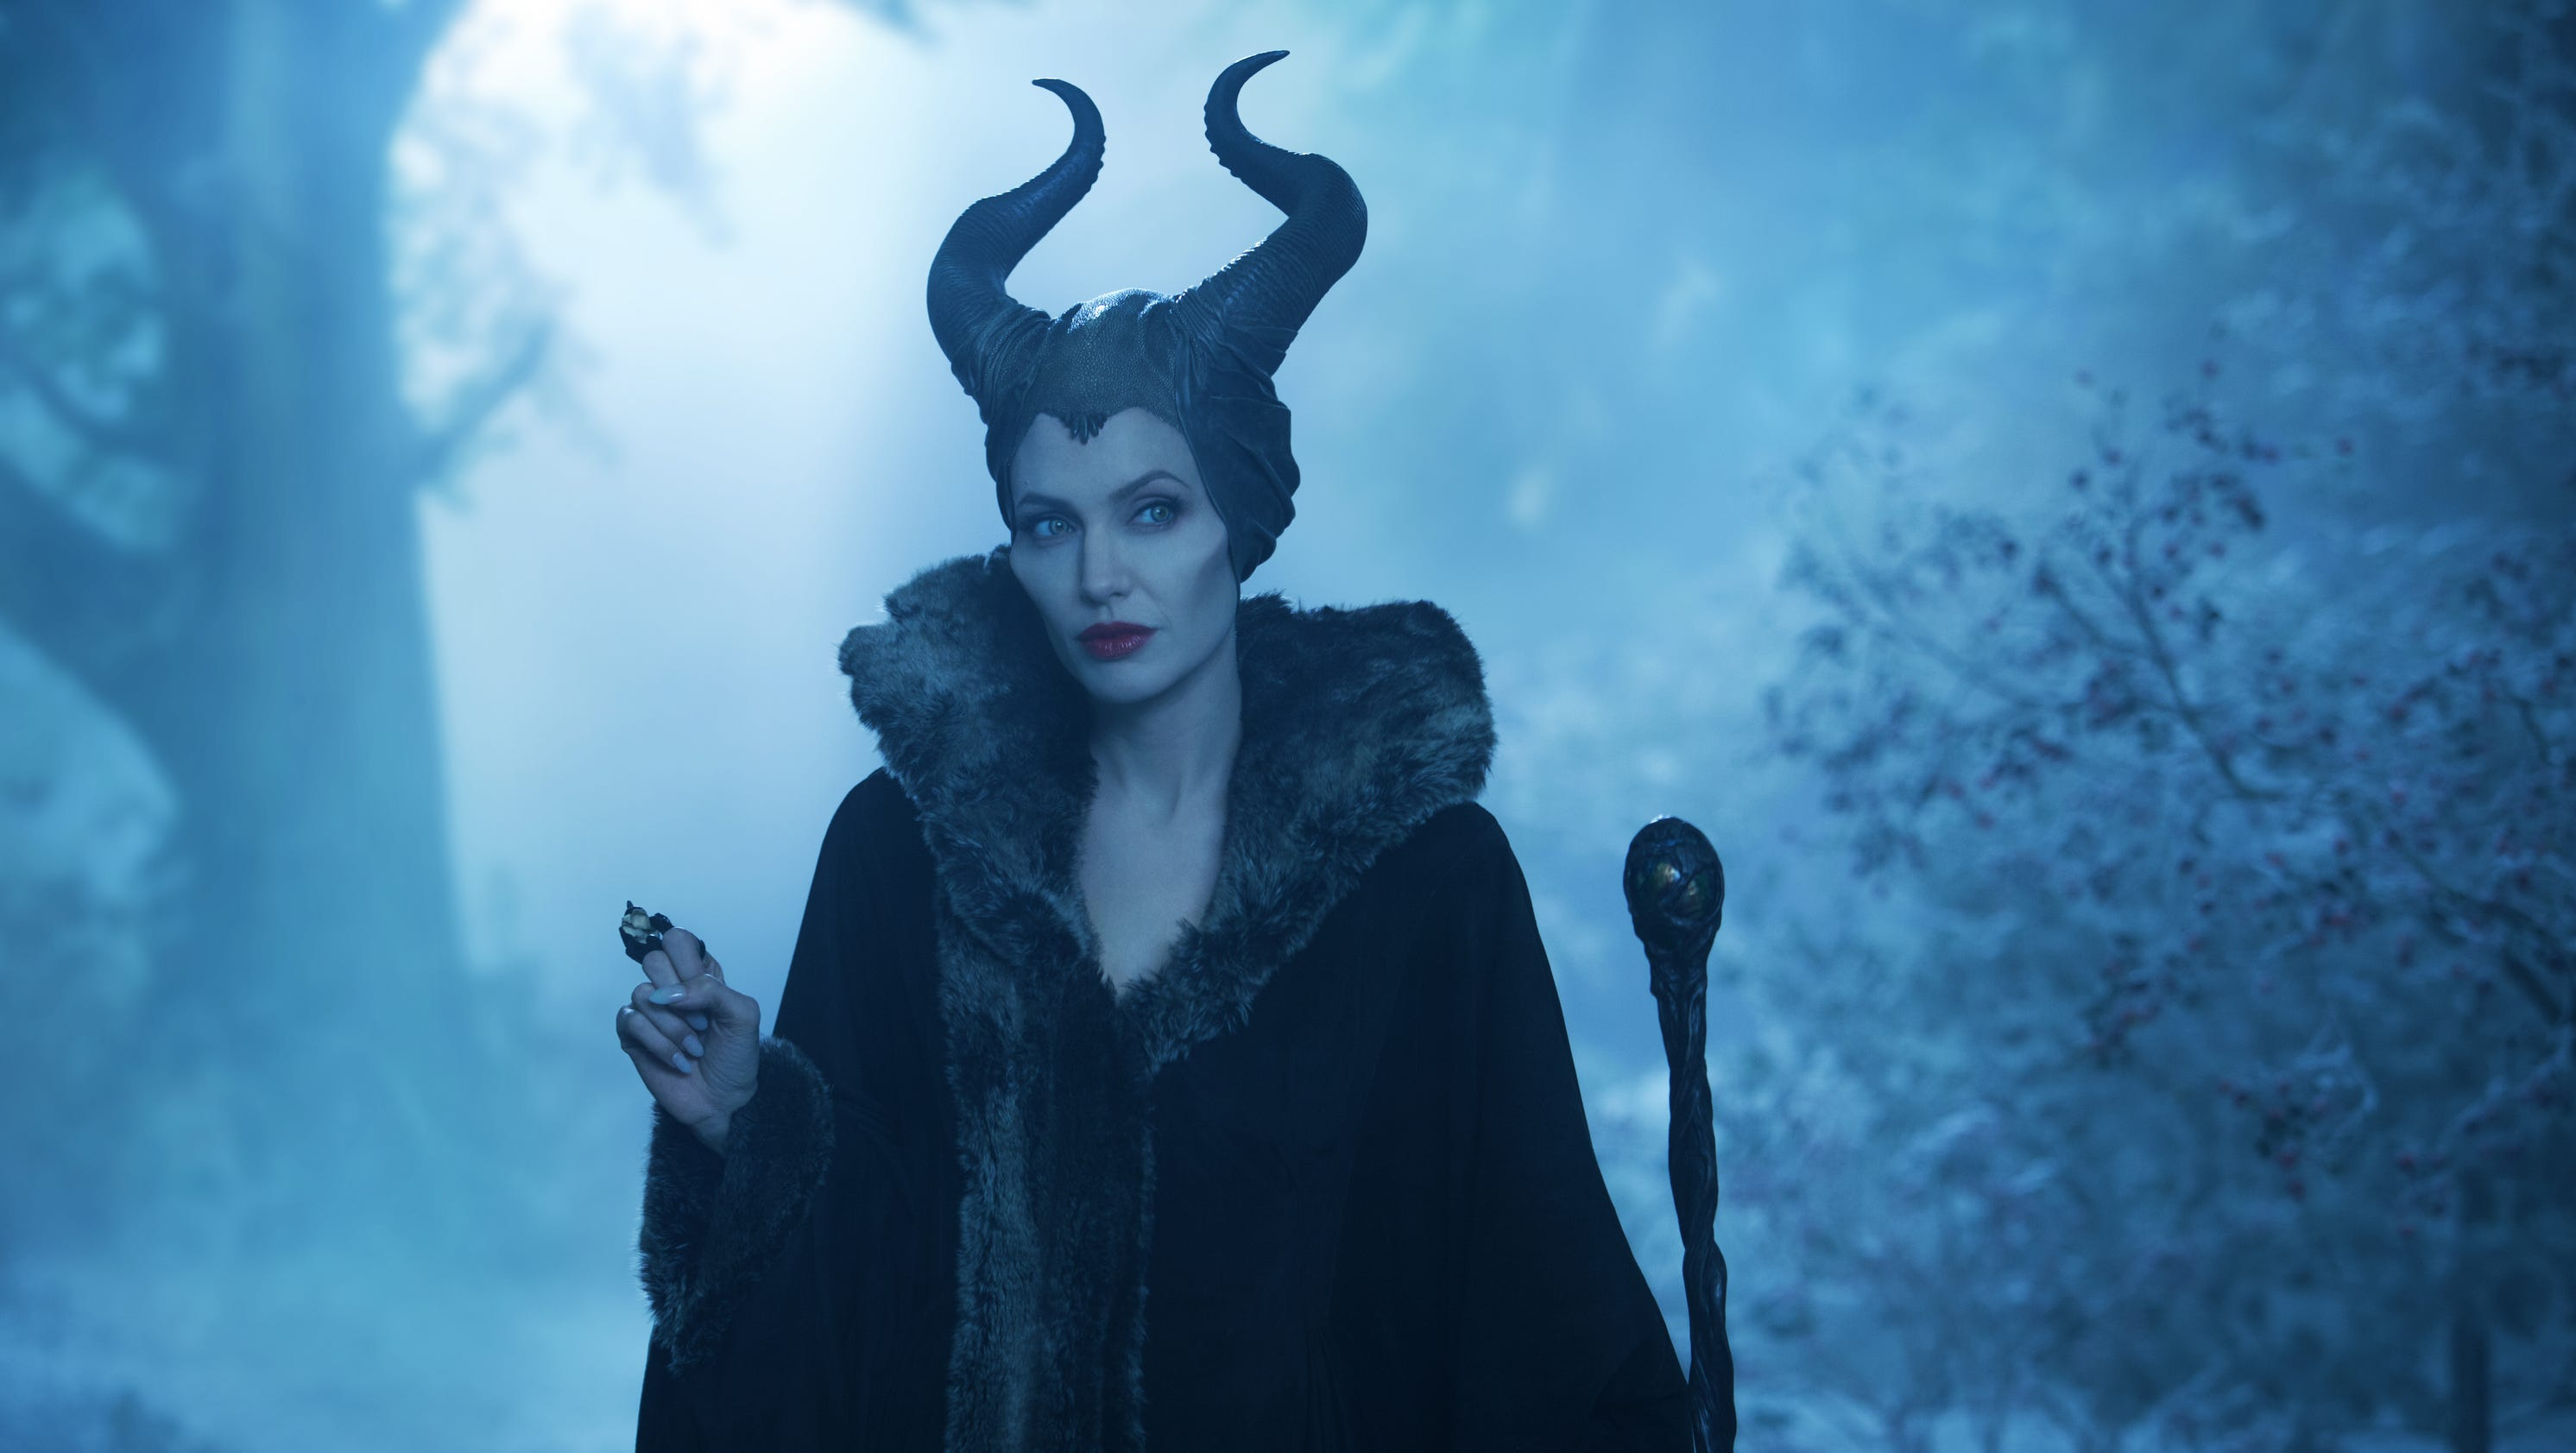 'Maleficent': Nice to look at, but the magic isn't there